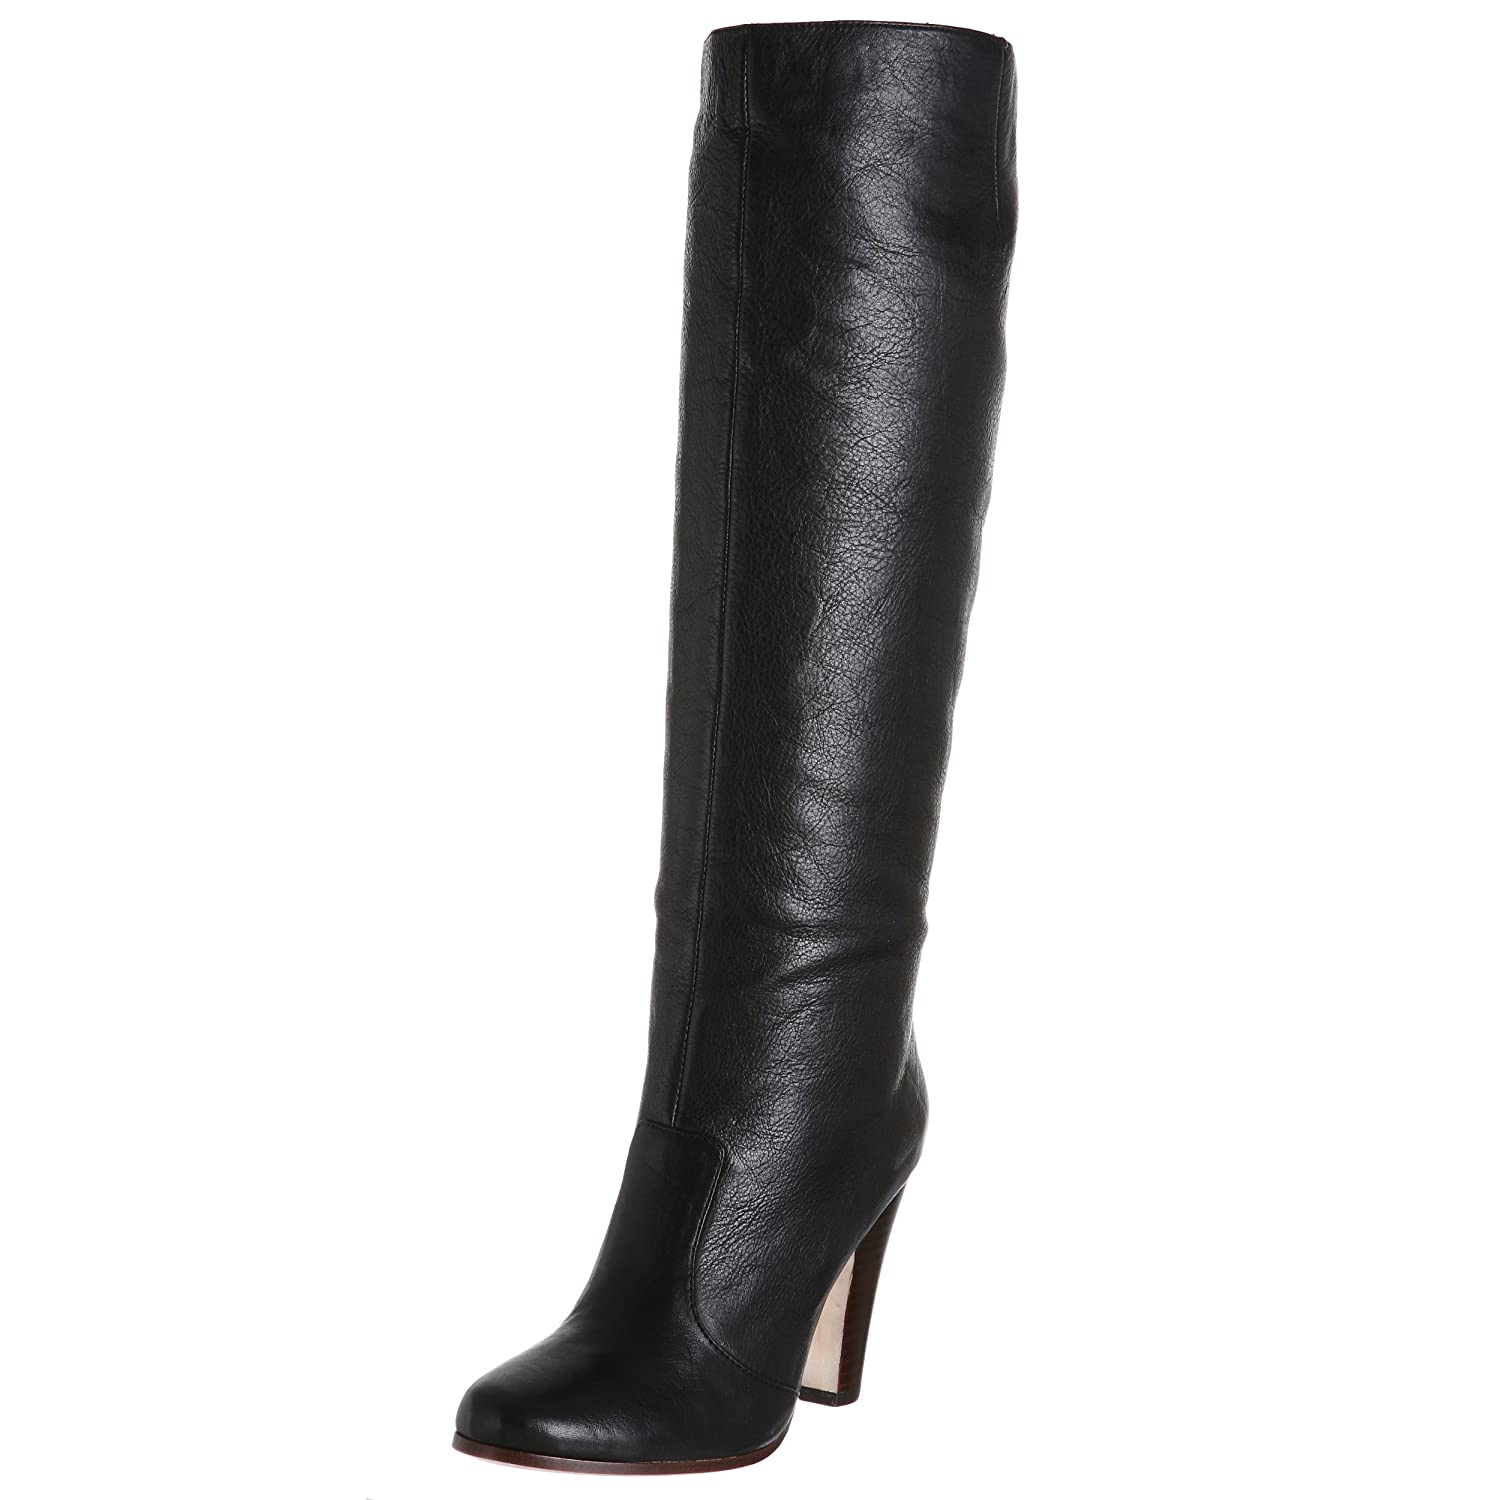 Endless.com: Dolce Vita Women's Wendy Boot: Knee-High - Free Overnight Shipping & Return Shipping